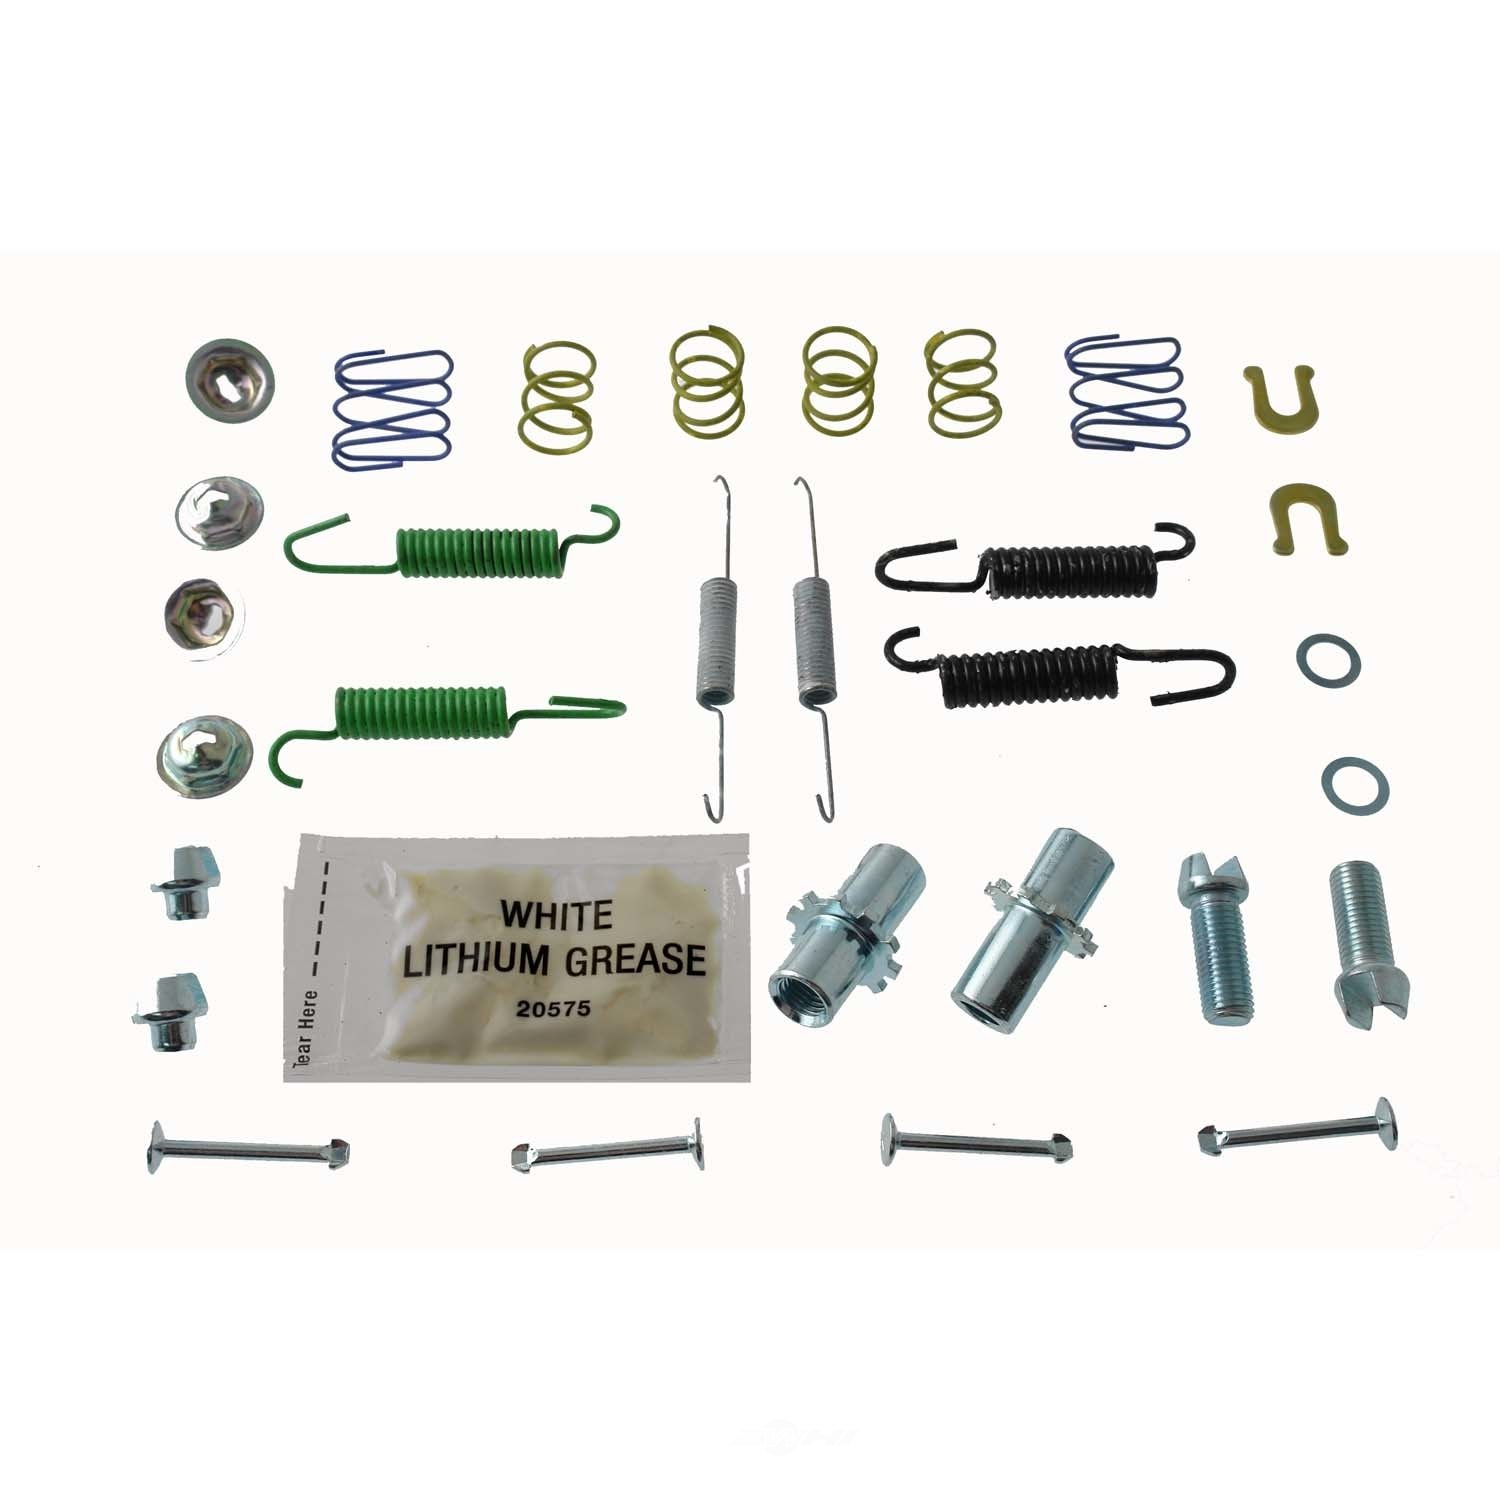 CARLSON QUALITY BRAKE PARTS - Parking Brake Hardware Kit - CRL 17472